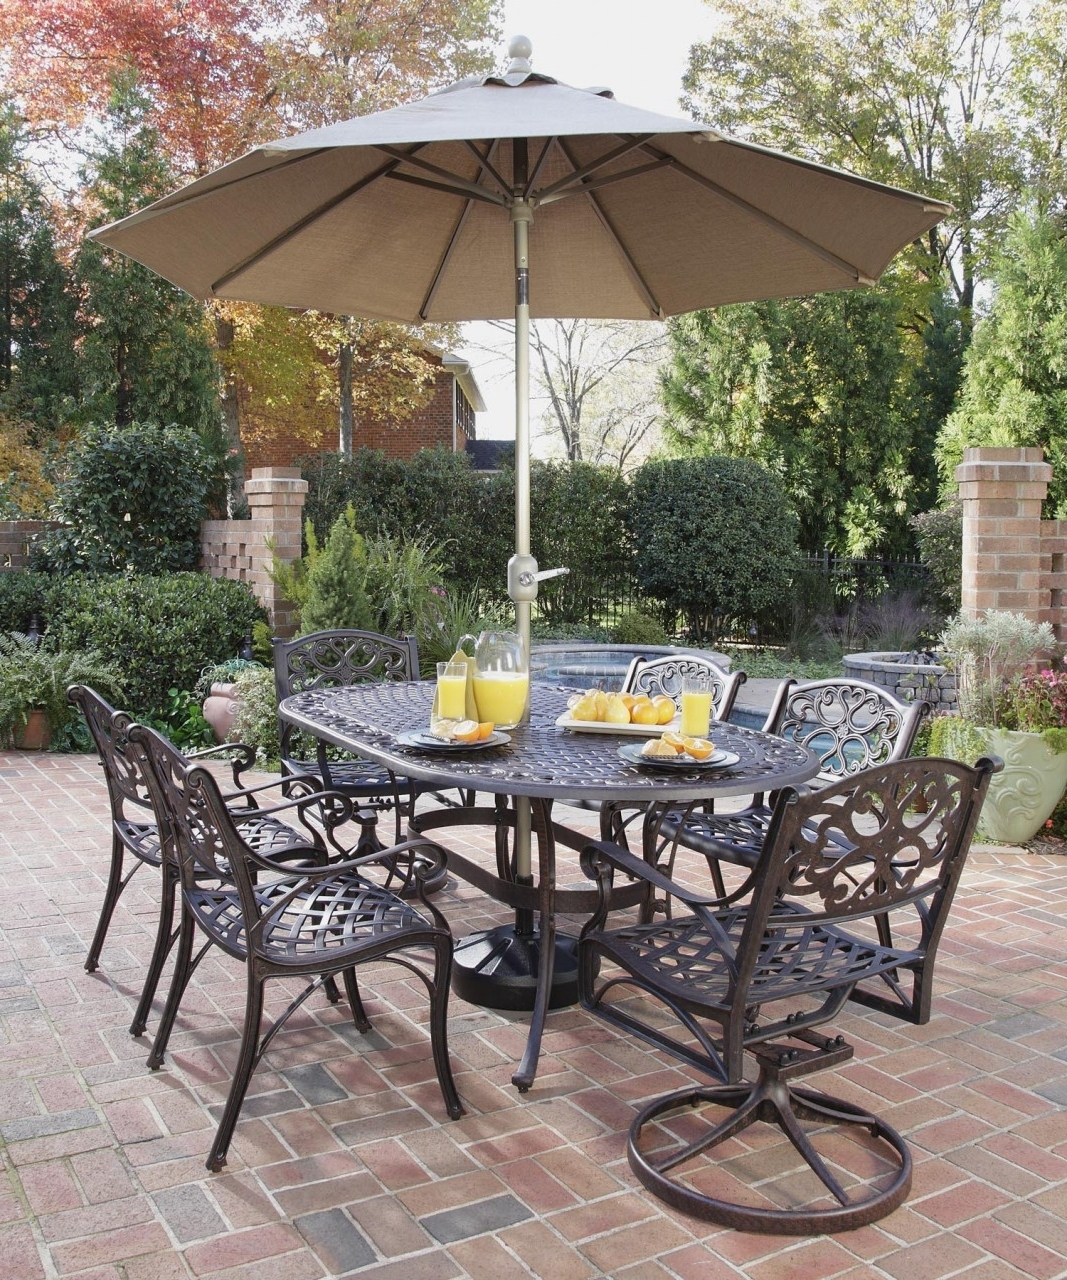 Sams Club Patio Umbrellas With Regard To Famous Outdoor Design: Patio Umbrella And Sams Club Patio Furniture With (View 17 of 20)